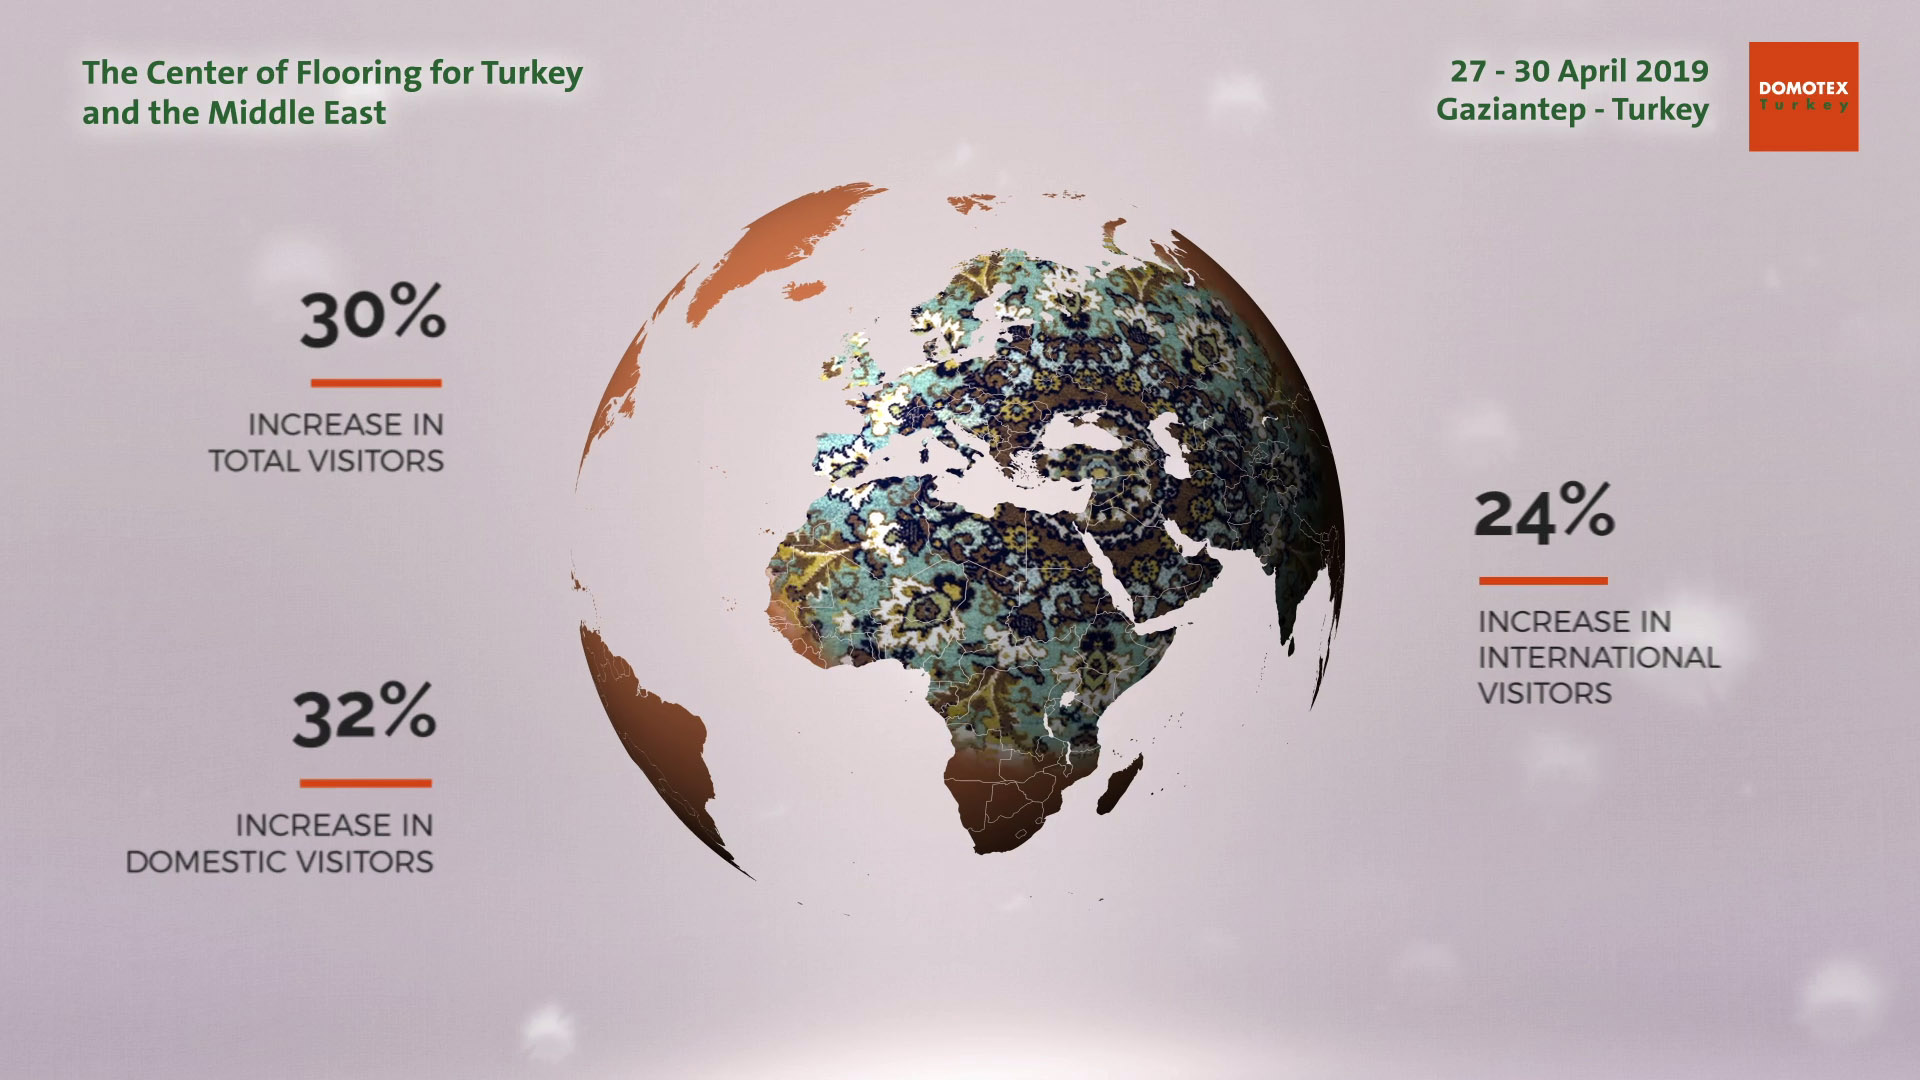 DOMOTEX Turkey | The Center of Flooring for Turkey and the Middle East